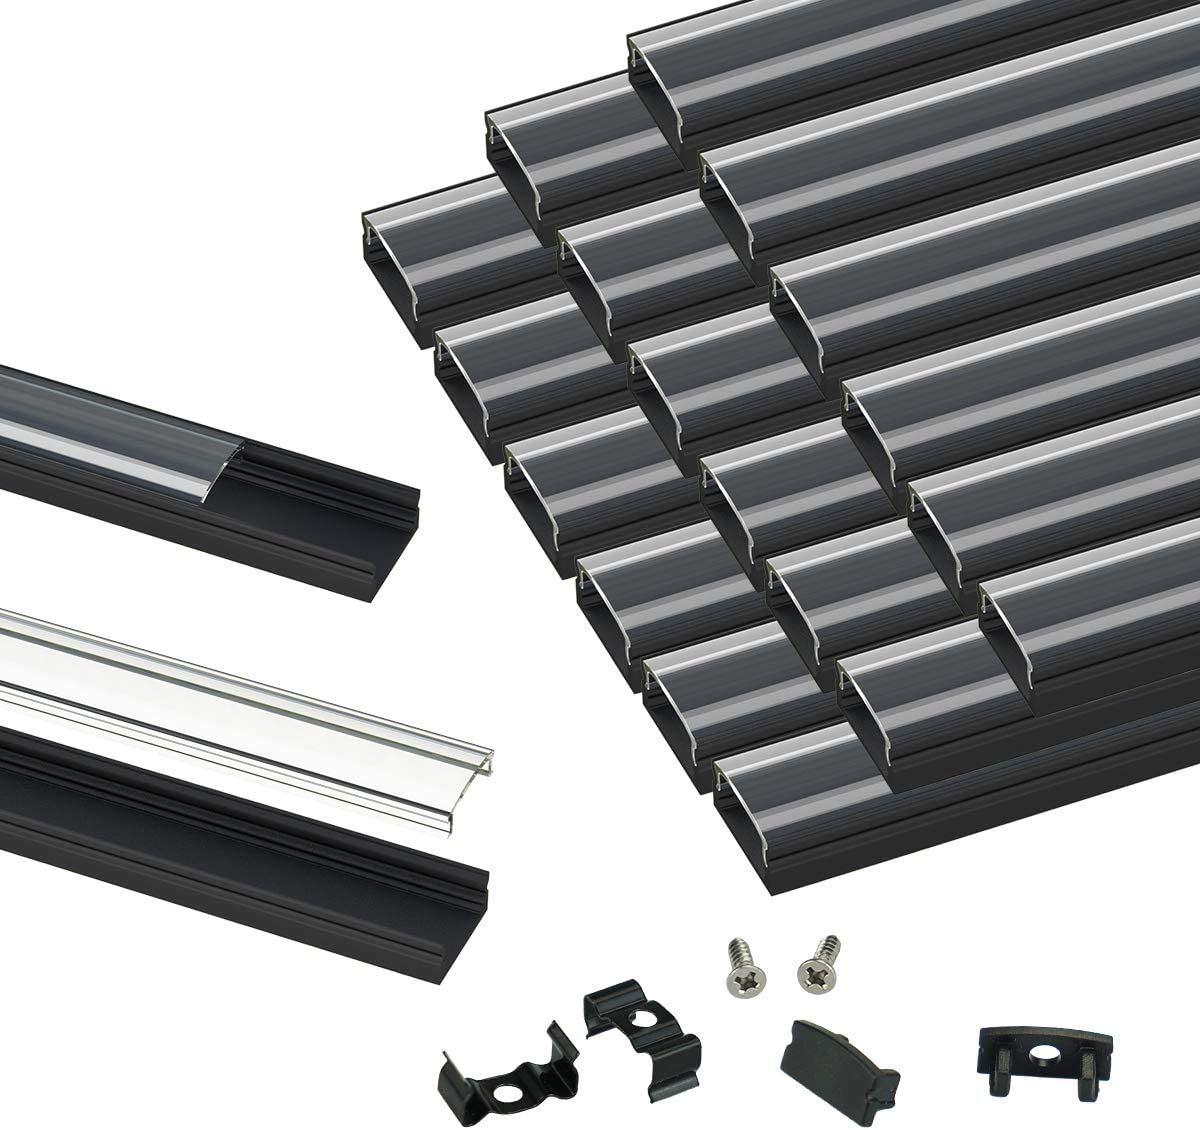 Muzata Courier Indefinitely shipping free 20Pack 3.3ft 1M Black LED Crystal Tra System Channel with